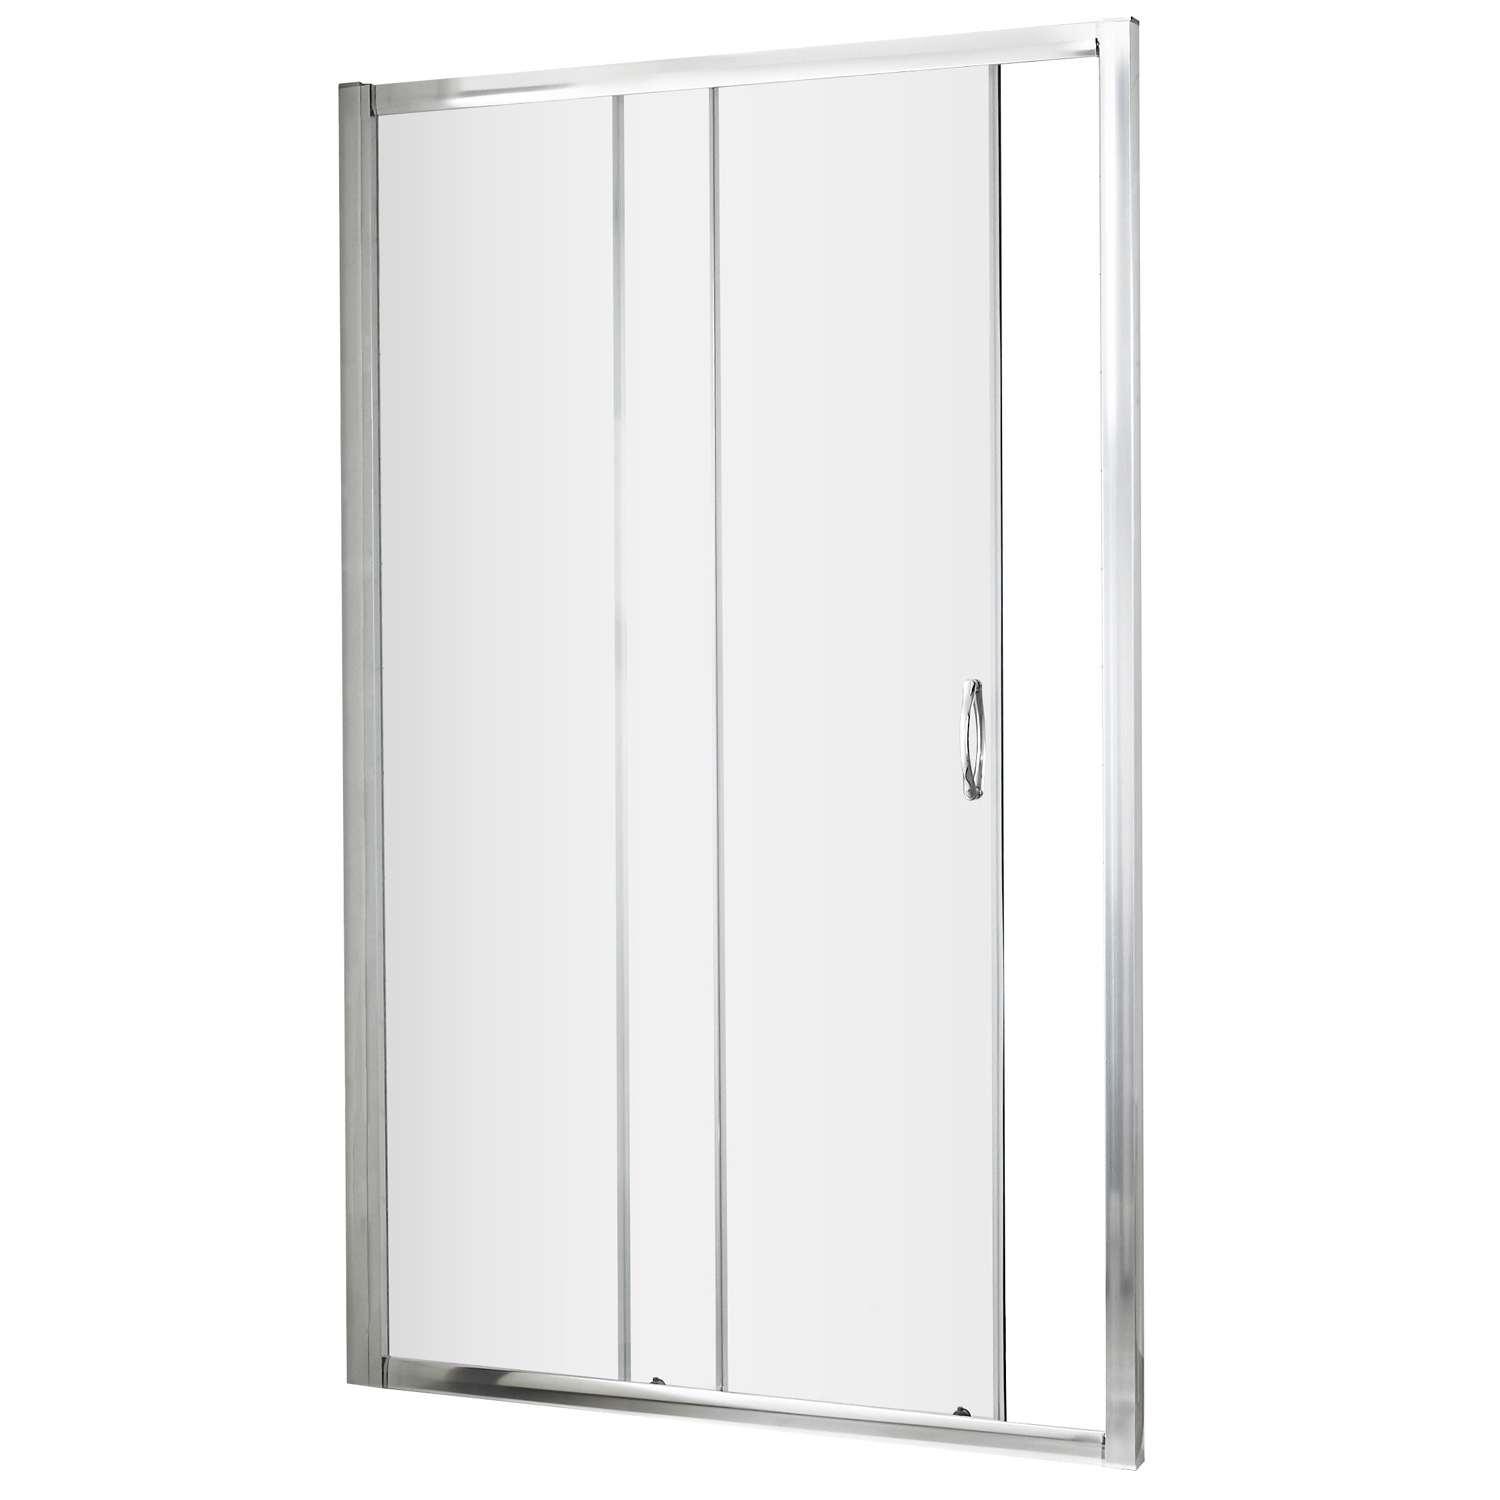 Premier Ella Sliding Shower Door 1200mm Wide - 5mm Glass Chrome